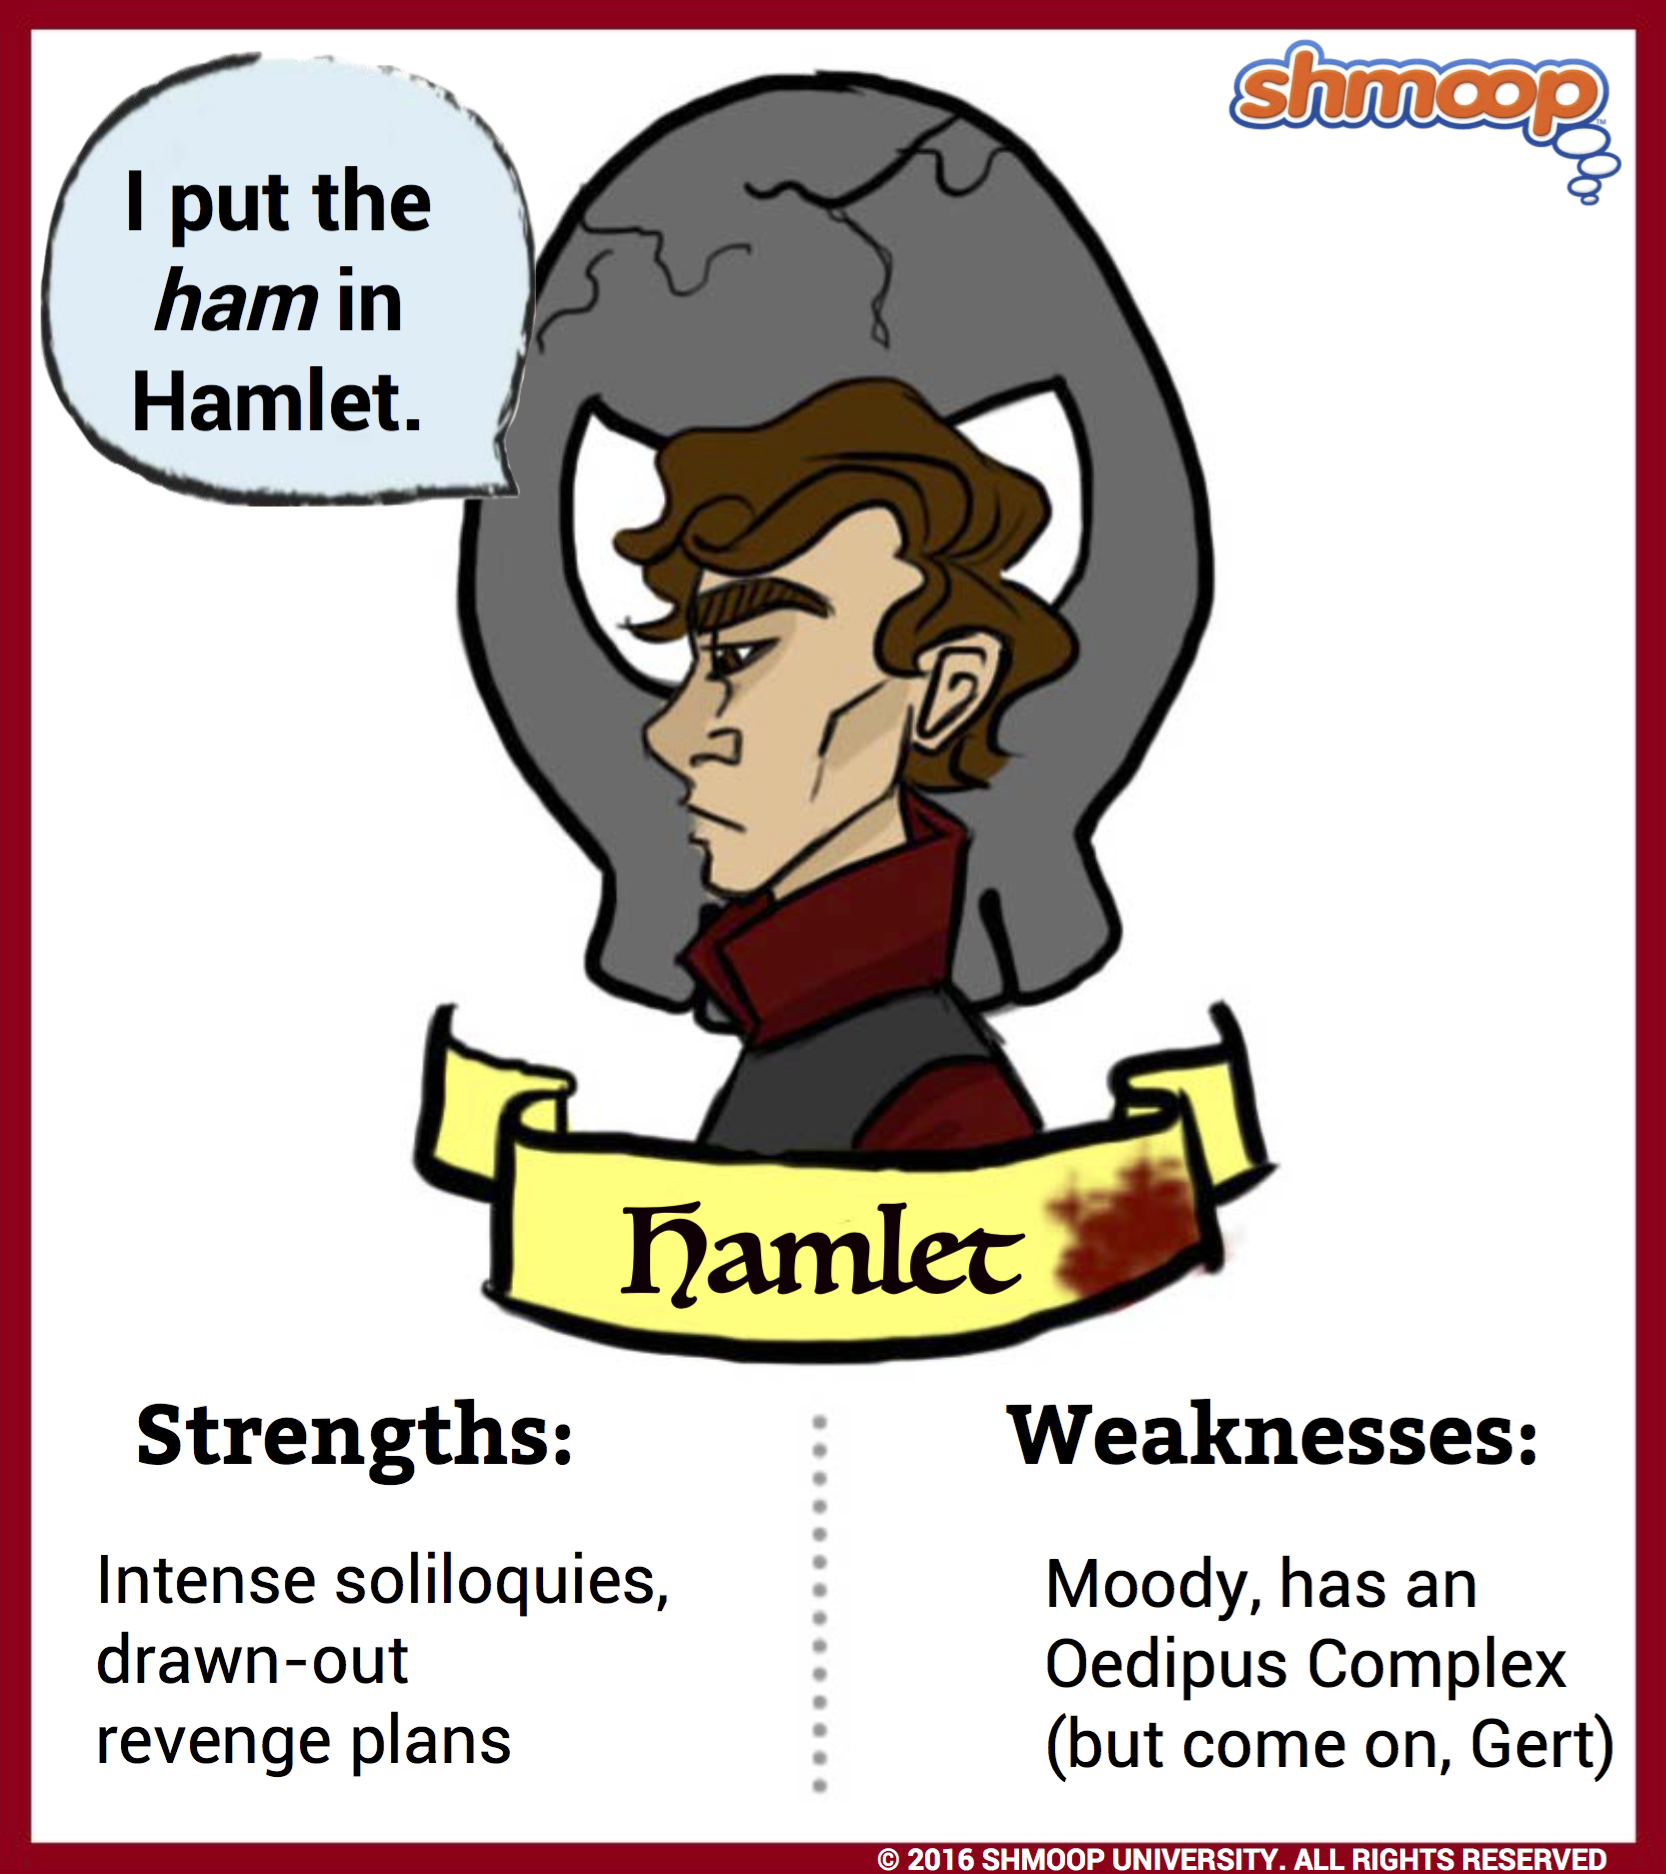 analysis essay of hamlet Hamlet essay it can be argued that, hamlet , is one of the greatest tragedy pieces written by william shakespeare throughout his life the play provides conflict between a variety of personalities all in the pursuit of power or their own interruption of moral justice.